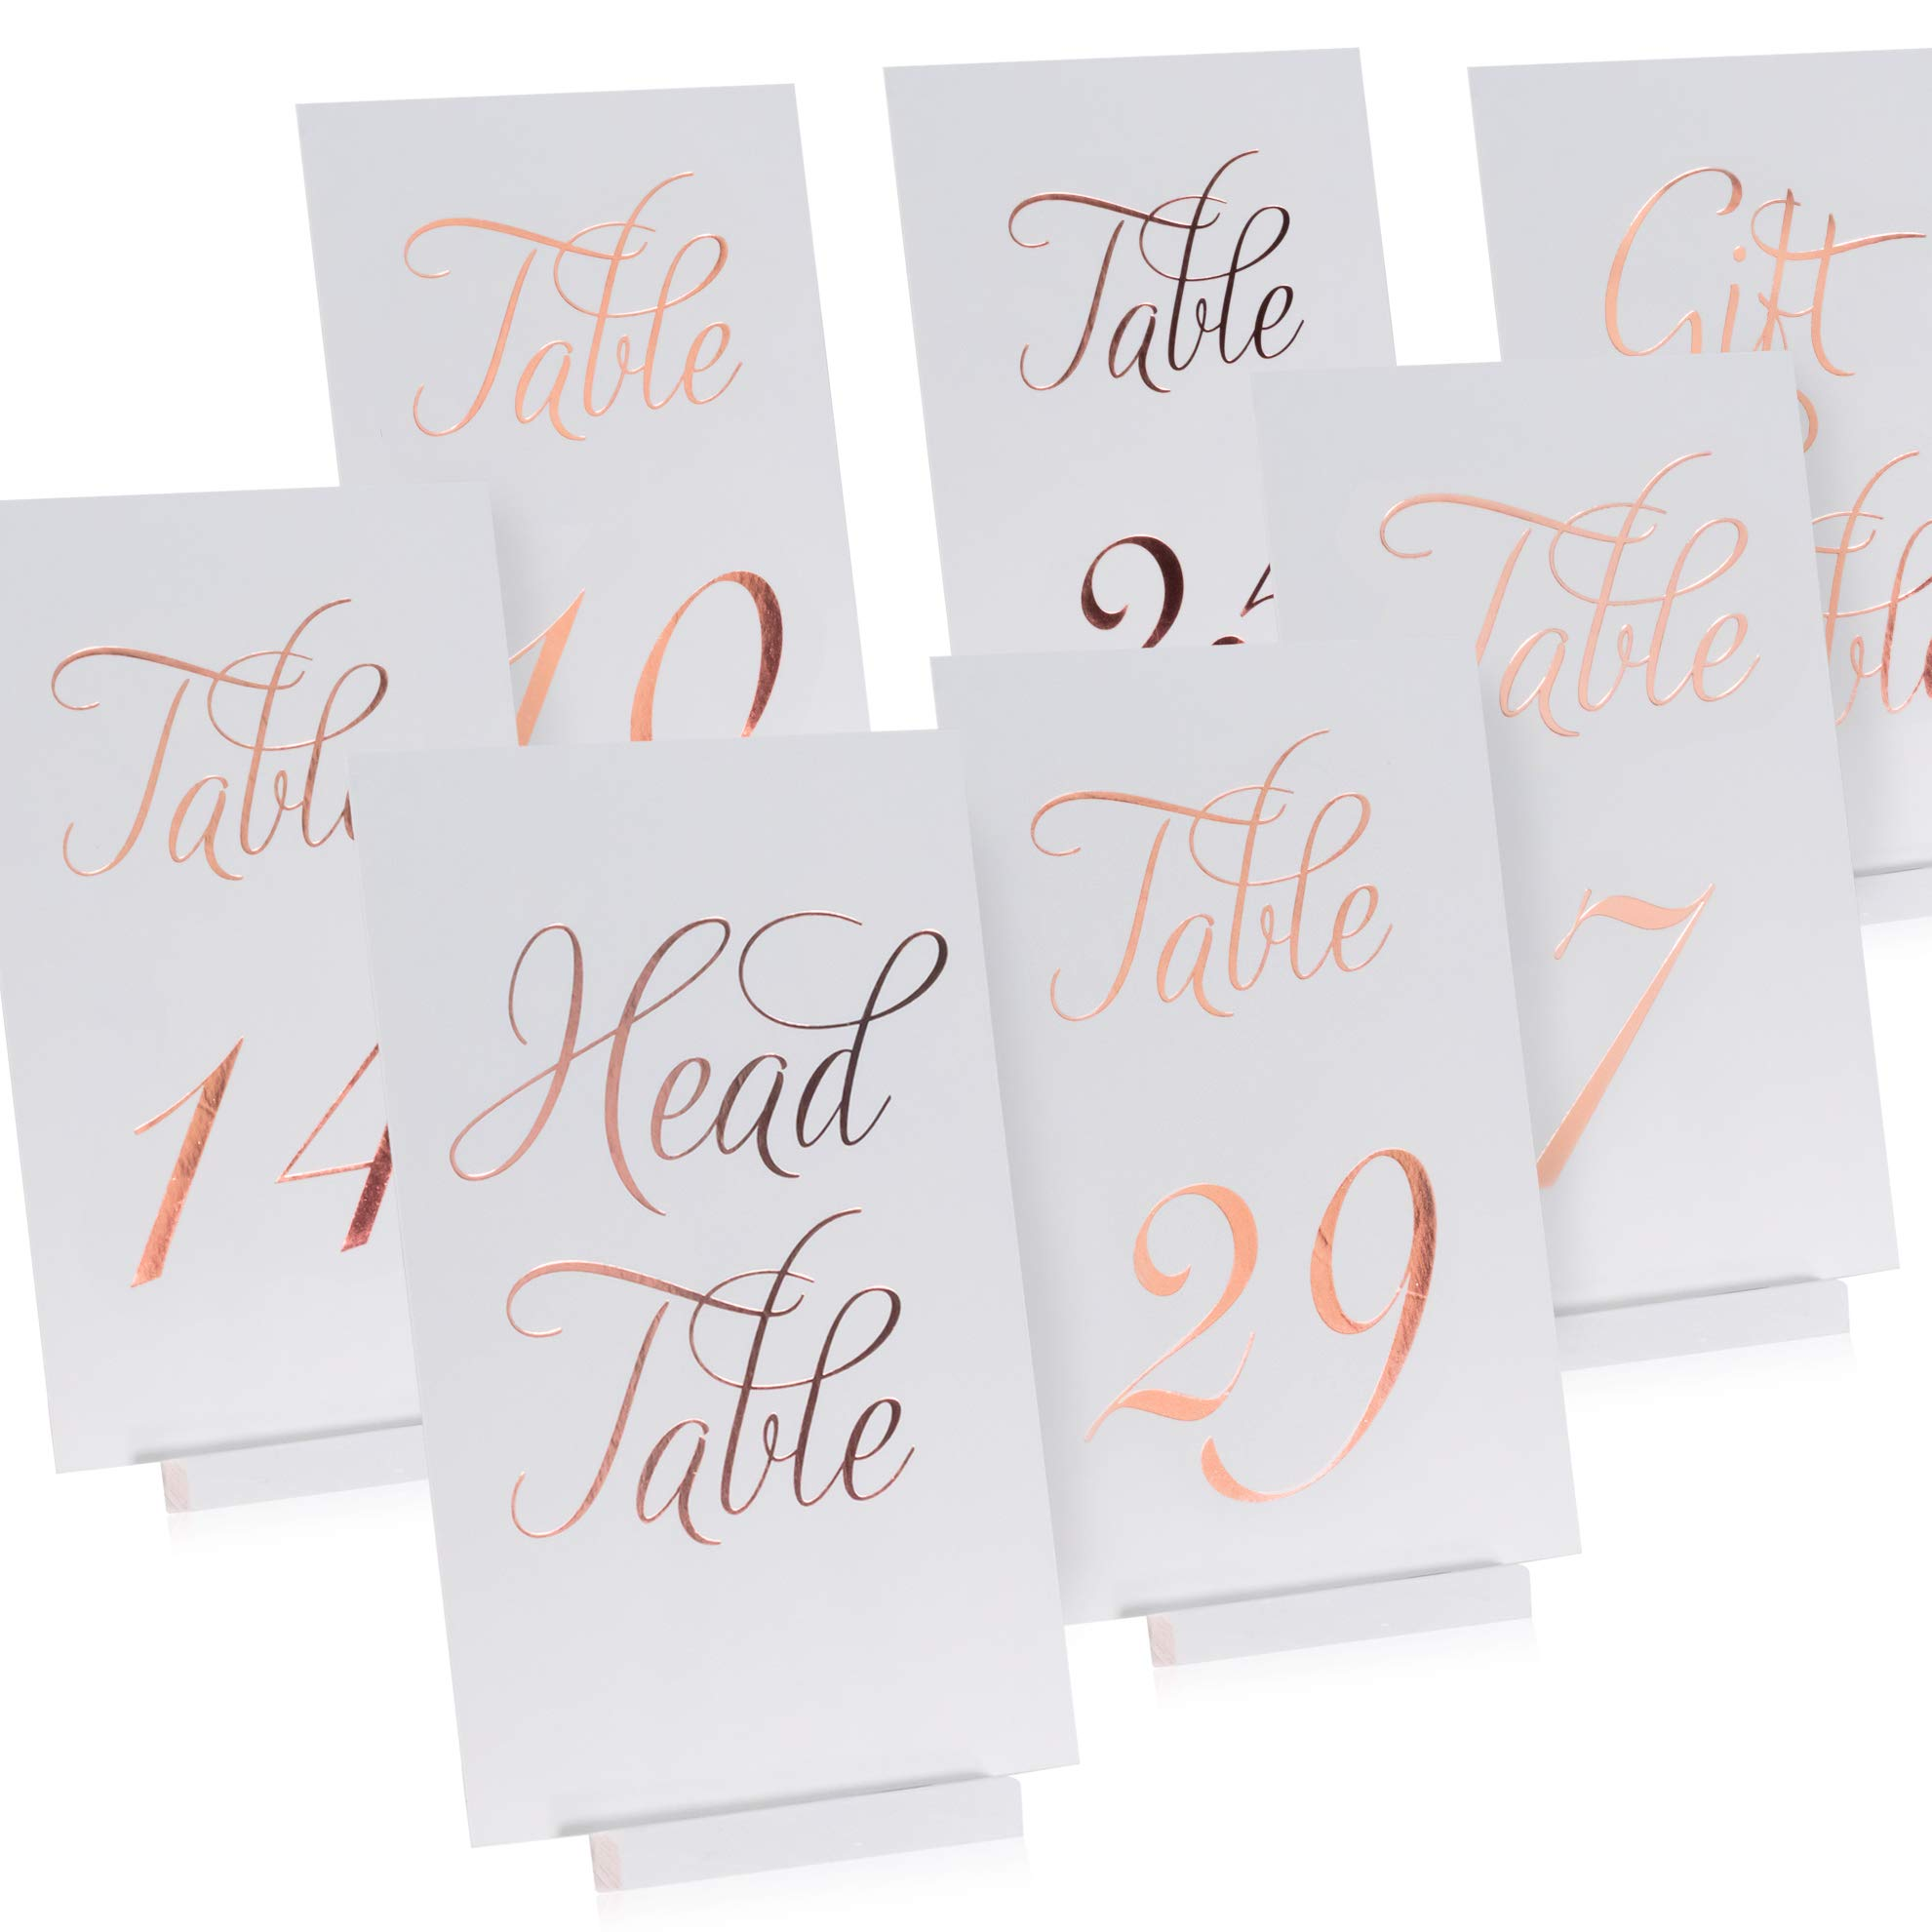 ZICOTO Elegant Rose Gold Wedding Table Numbers in Double Sided Rose Gold Foil Lettering with Head and Gift Table Card - 4 x 6 inches and Numbered 1-30 - Perfect for Weddings and Events